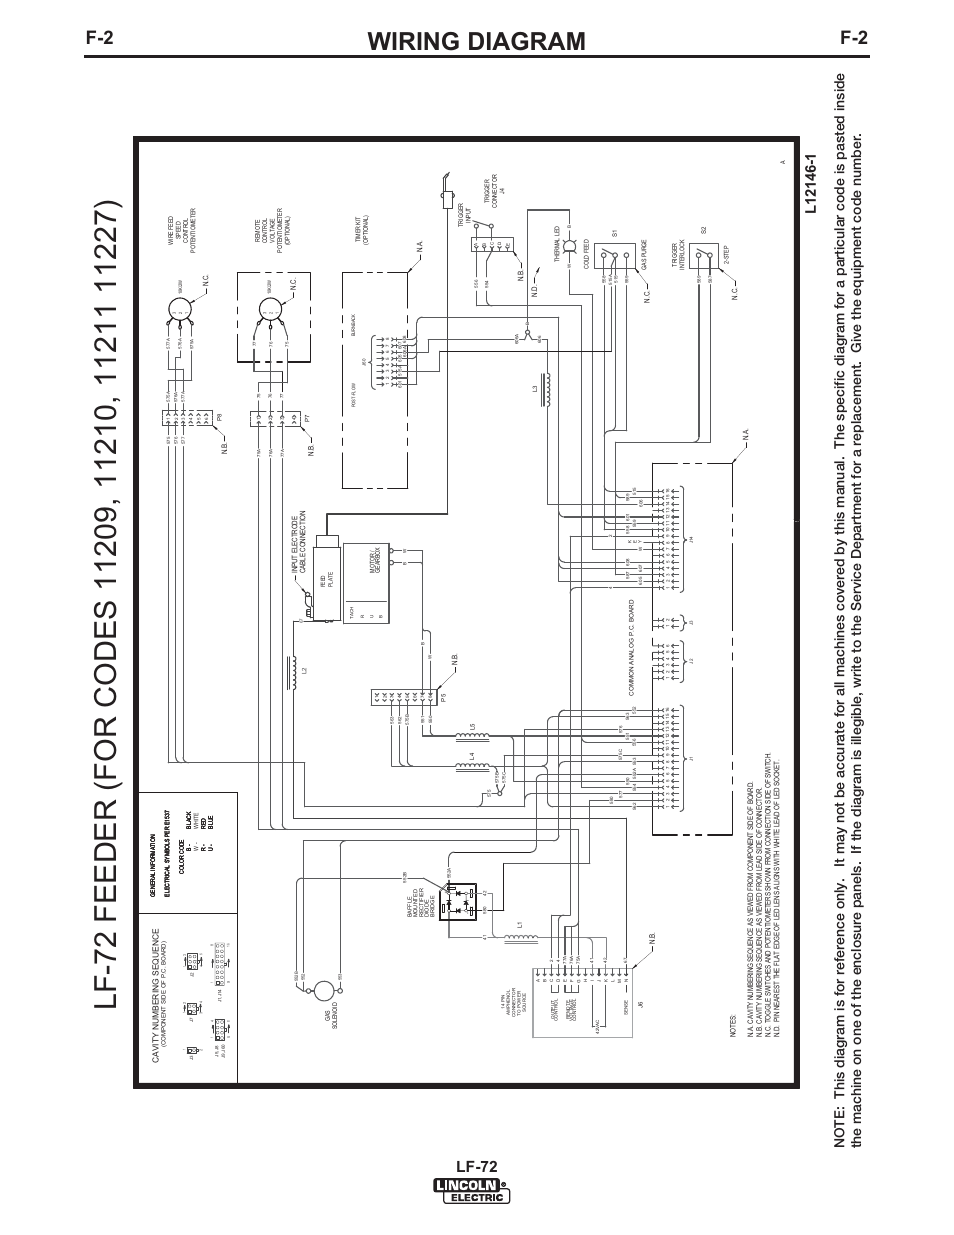 Lincoln Electric Wire Diagram | standard electrical wiring diagram on lincoln ls relay diagram, lincoln starting problems, lincoln parts diagrams, lincoln ls wire harness diagram, lincoln continental horn schematics and diagram, 92 lincoln air suspension diagrams, lincoln transmission diagrams, lincoln heater core replacement, lincoln front suspension, 2000 lincoln ls diagrams, lincoln brakes,